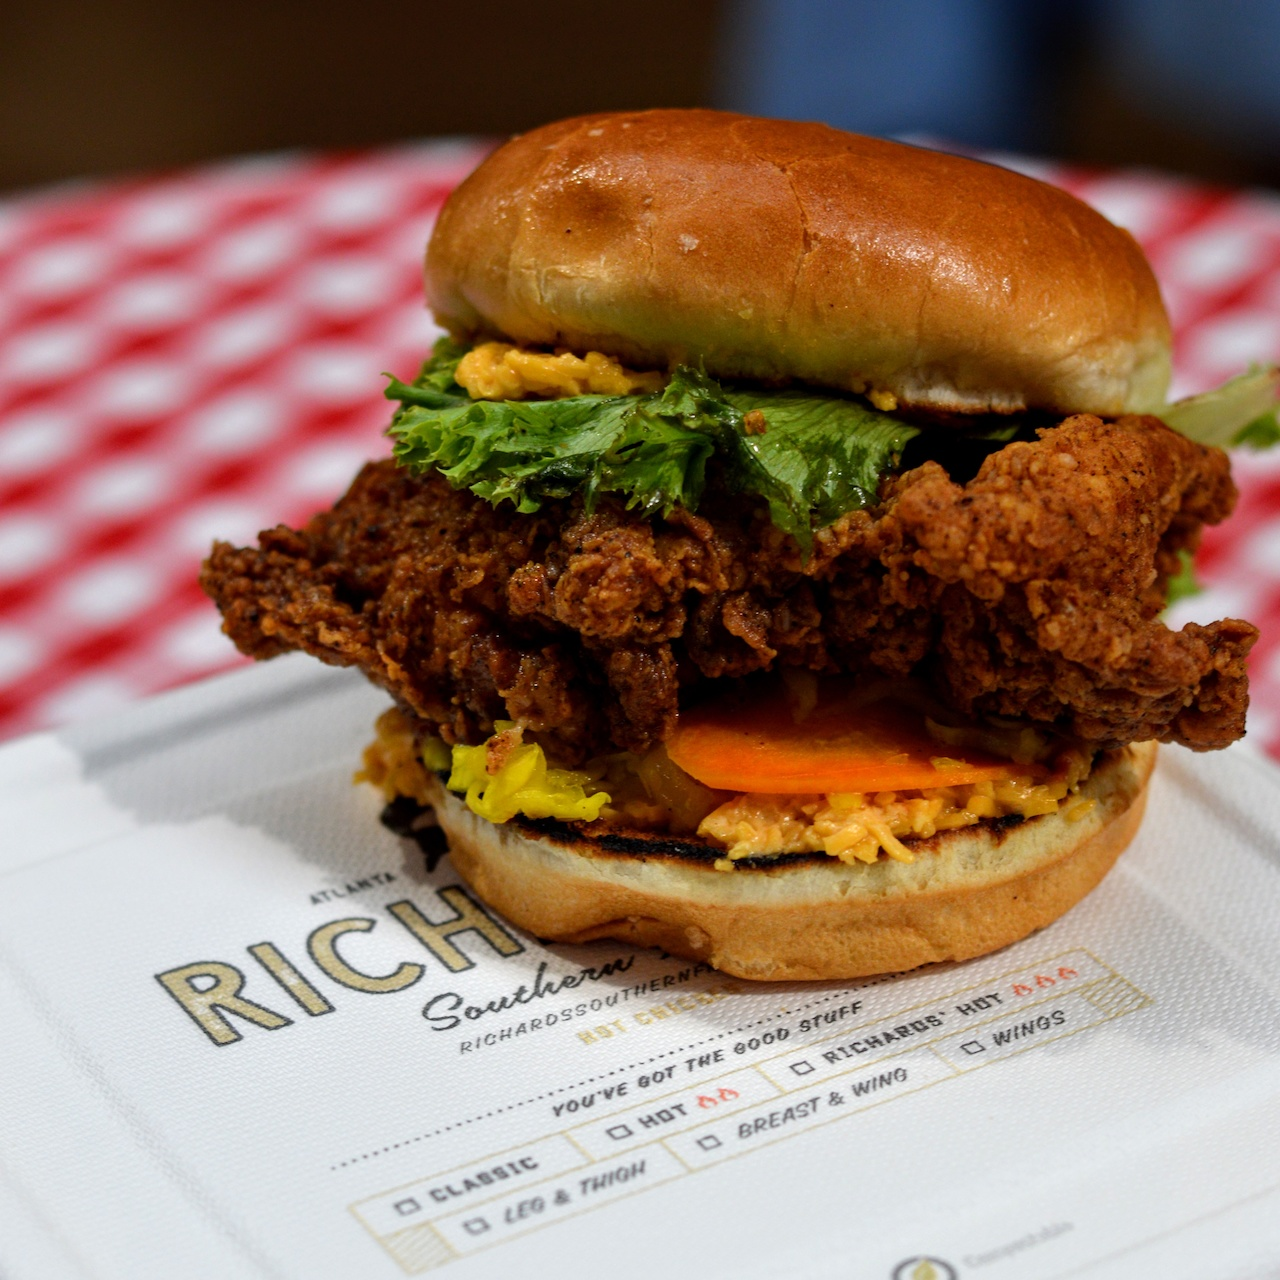 Richards' Southern Fried chicken sandwich